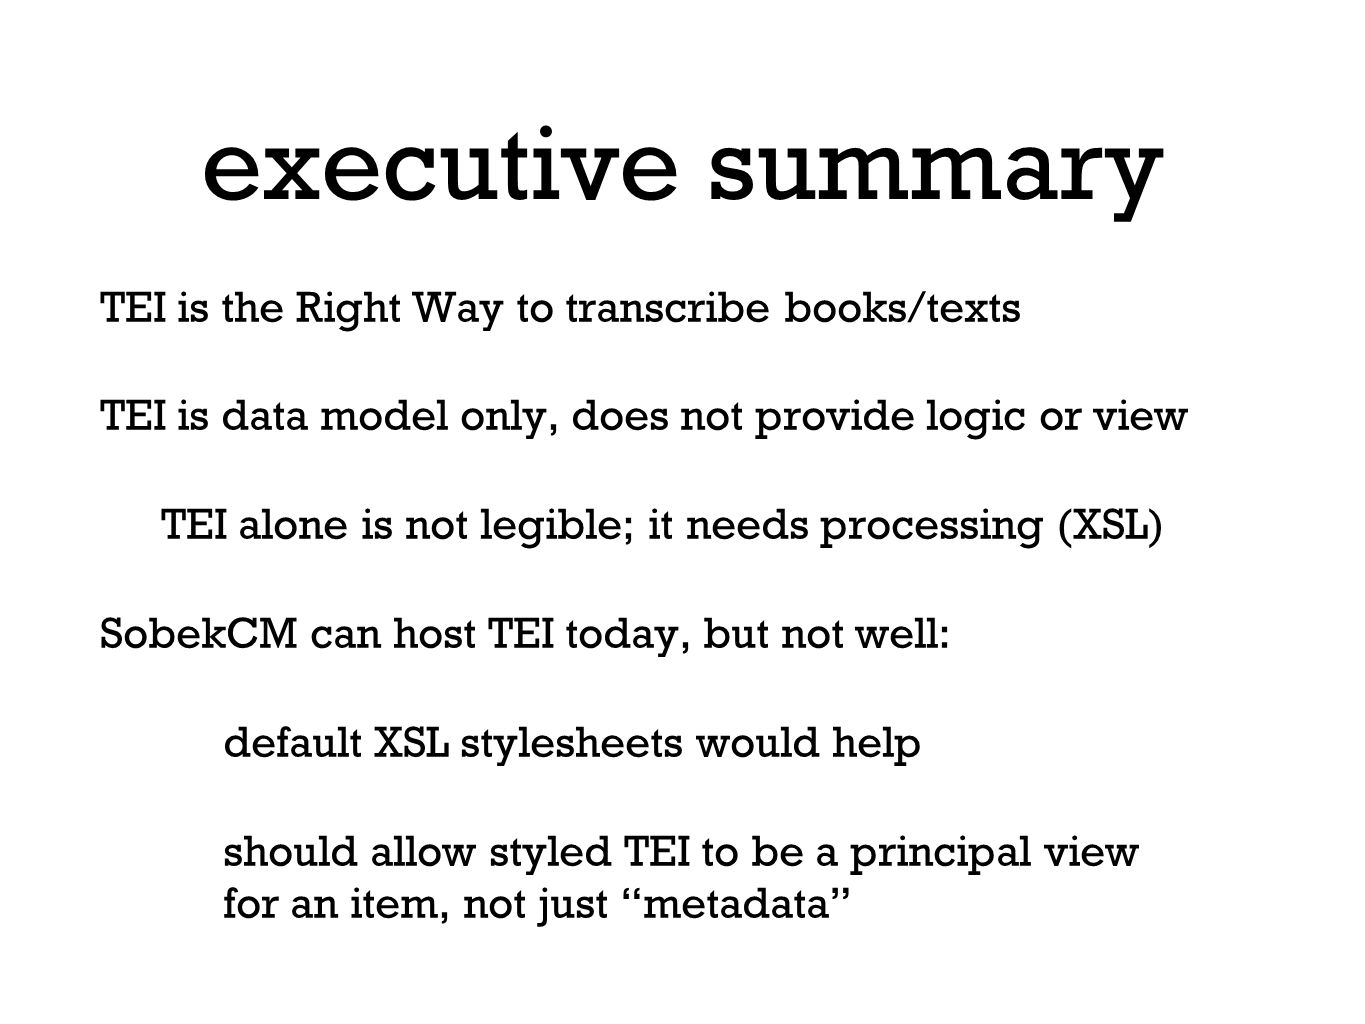 executive summary TEI is the Right Way to transcribe books/texts TEI is data model only, does not provide logic or view TEI alone is not legible; it needs processing (XSL) SobekCM can host TEI today, but not well: default XSL stylesheets would help should allow styled TEI to be a principal view for an item, not just metadata